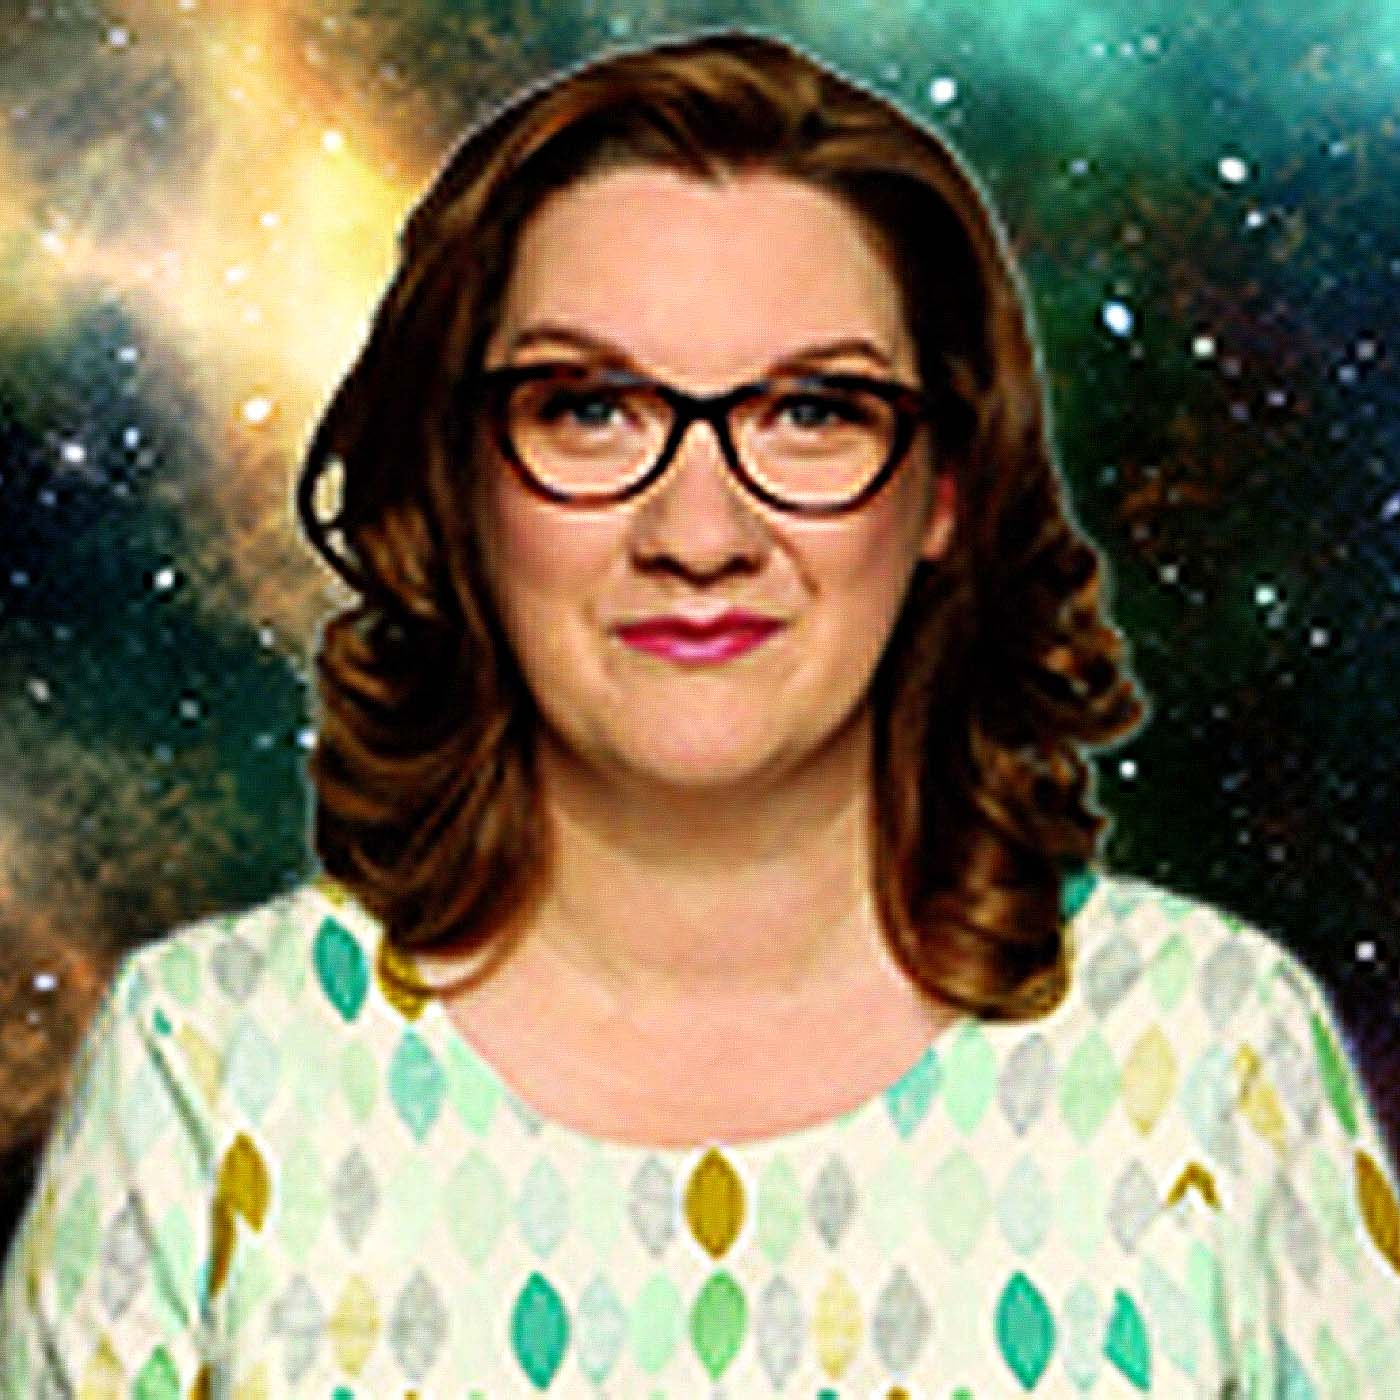 The Comedian's Comedian - SARAH MILLICAN & RUSSELL HOWARD ON THE INFINITE SOFA